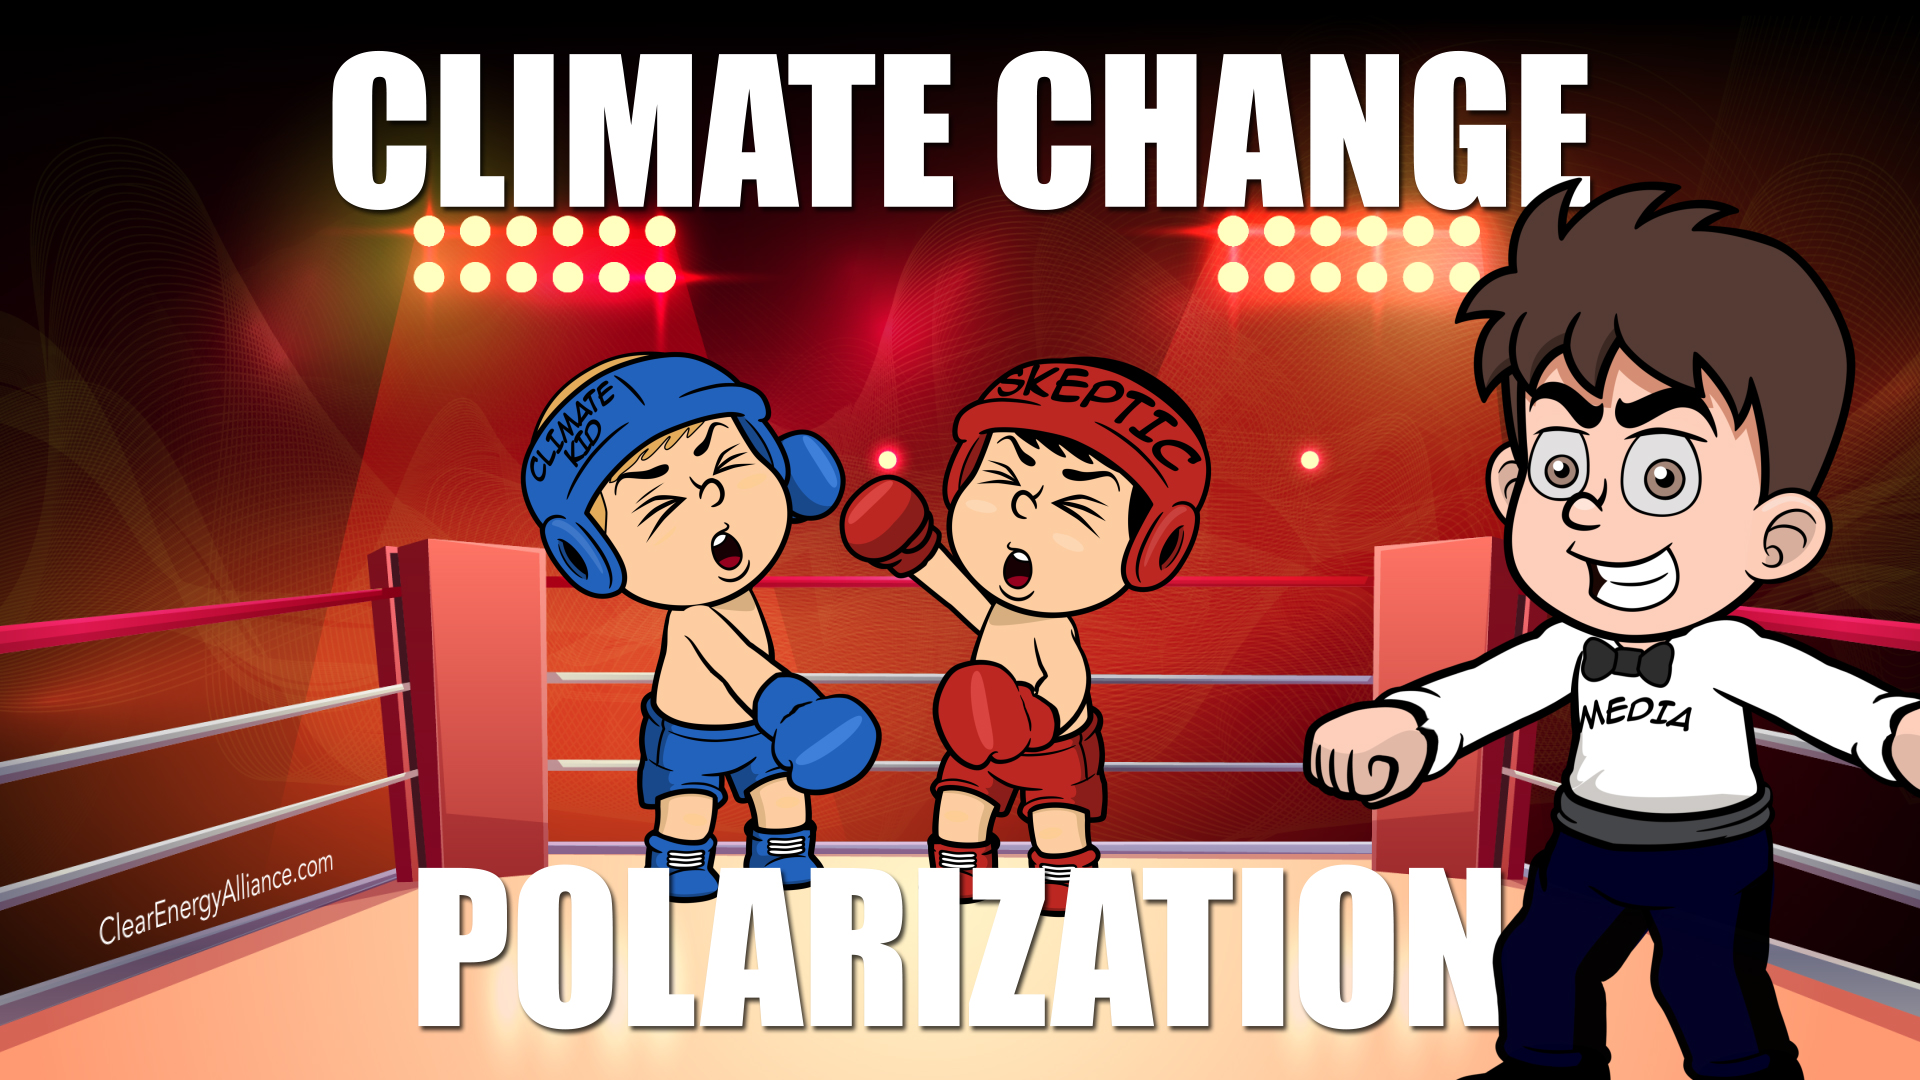 Climate Change Polarization